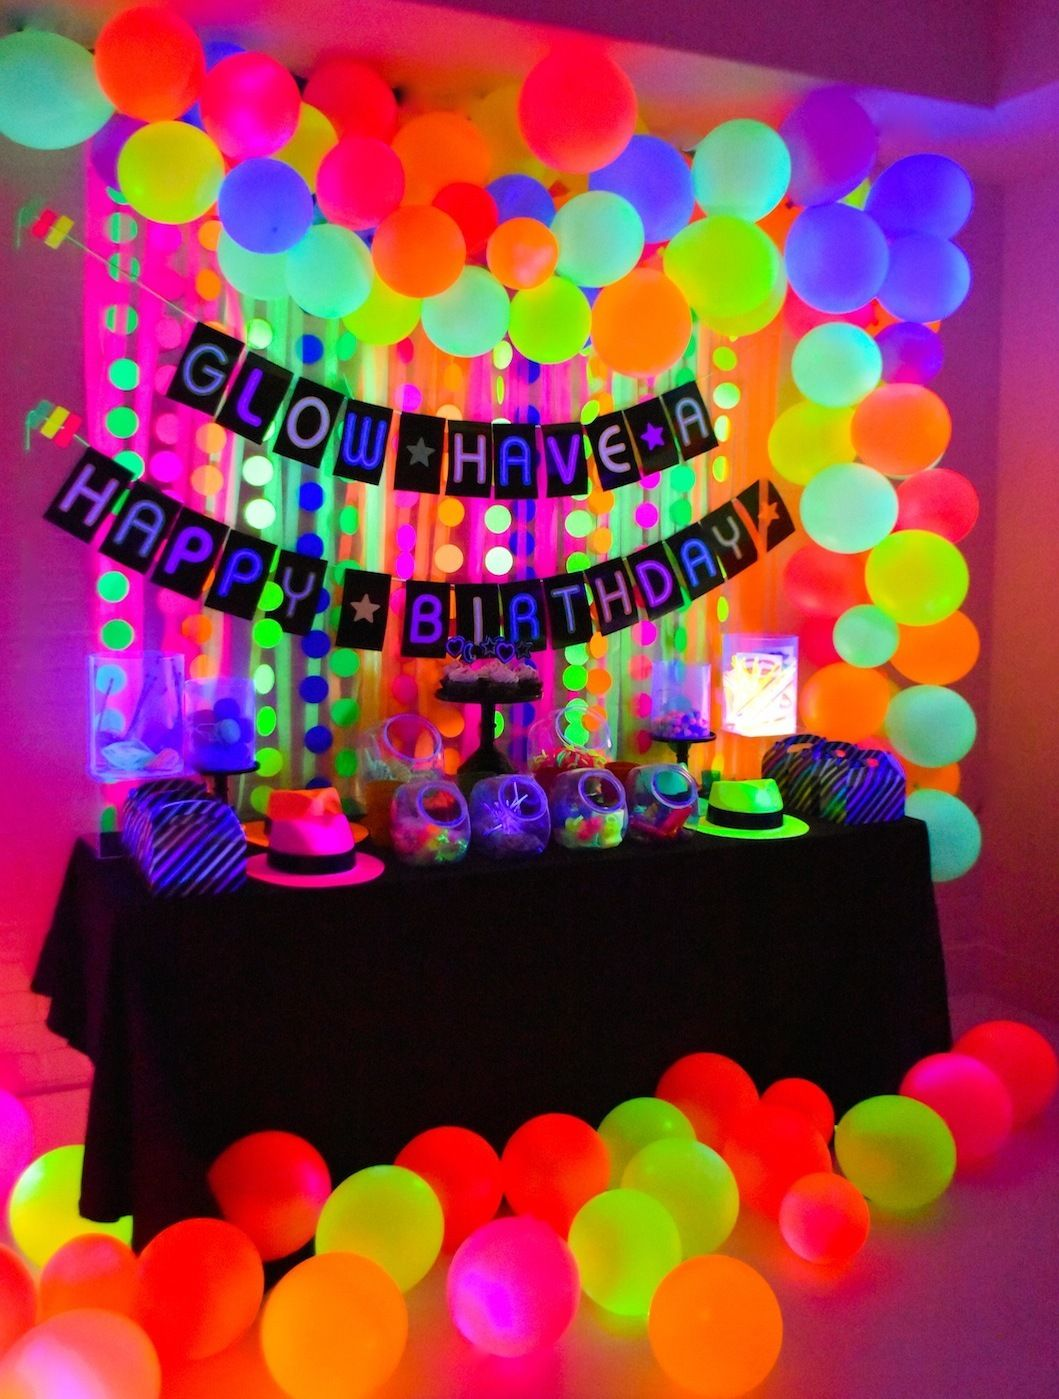 neon glow in the dark birthday party decor ideas idea in